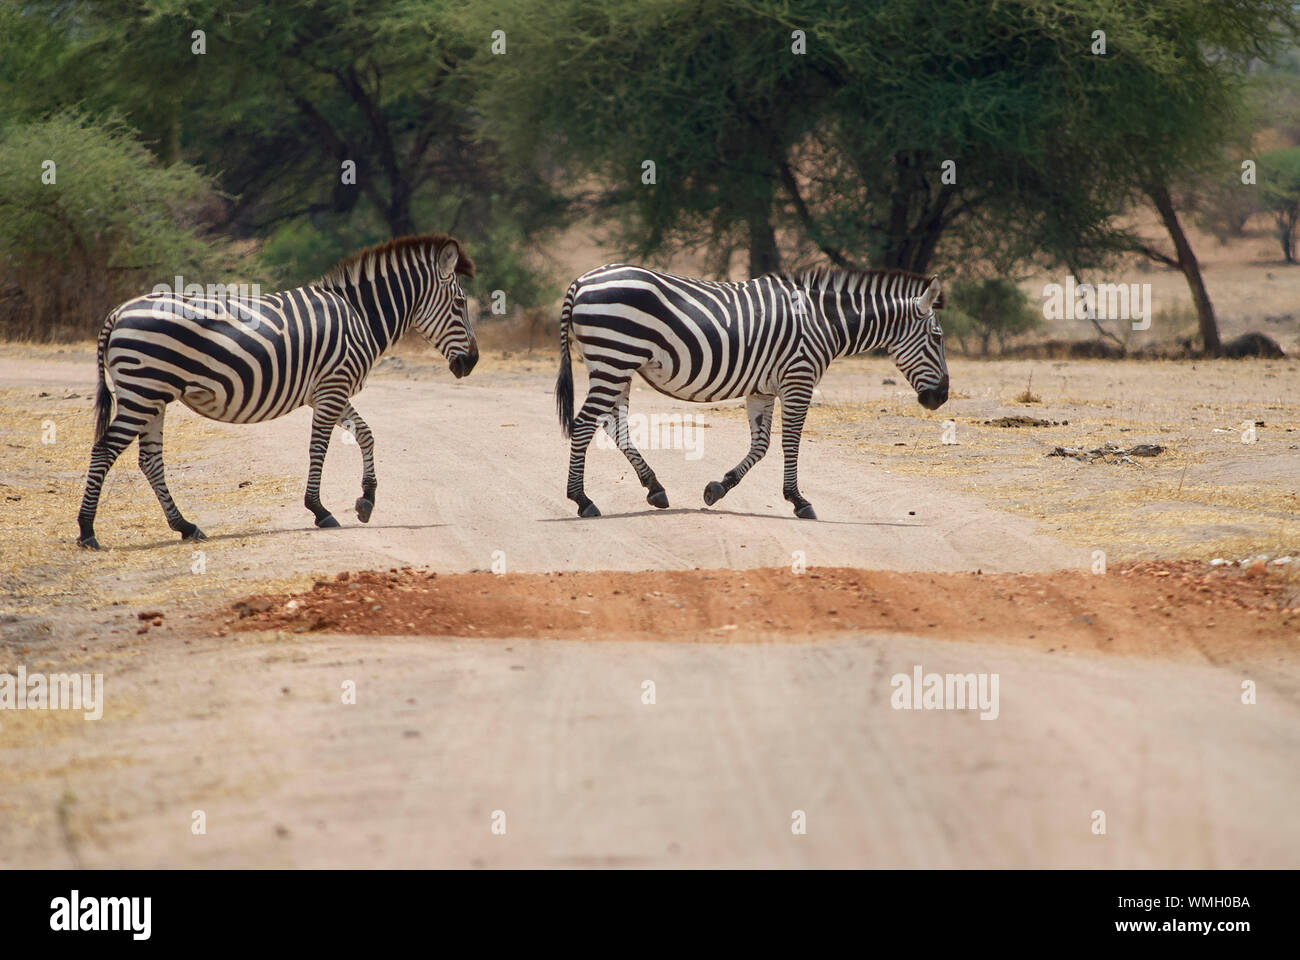 Two zebras crossing a dirt road in the Ruaha National Park Stock Photo